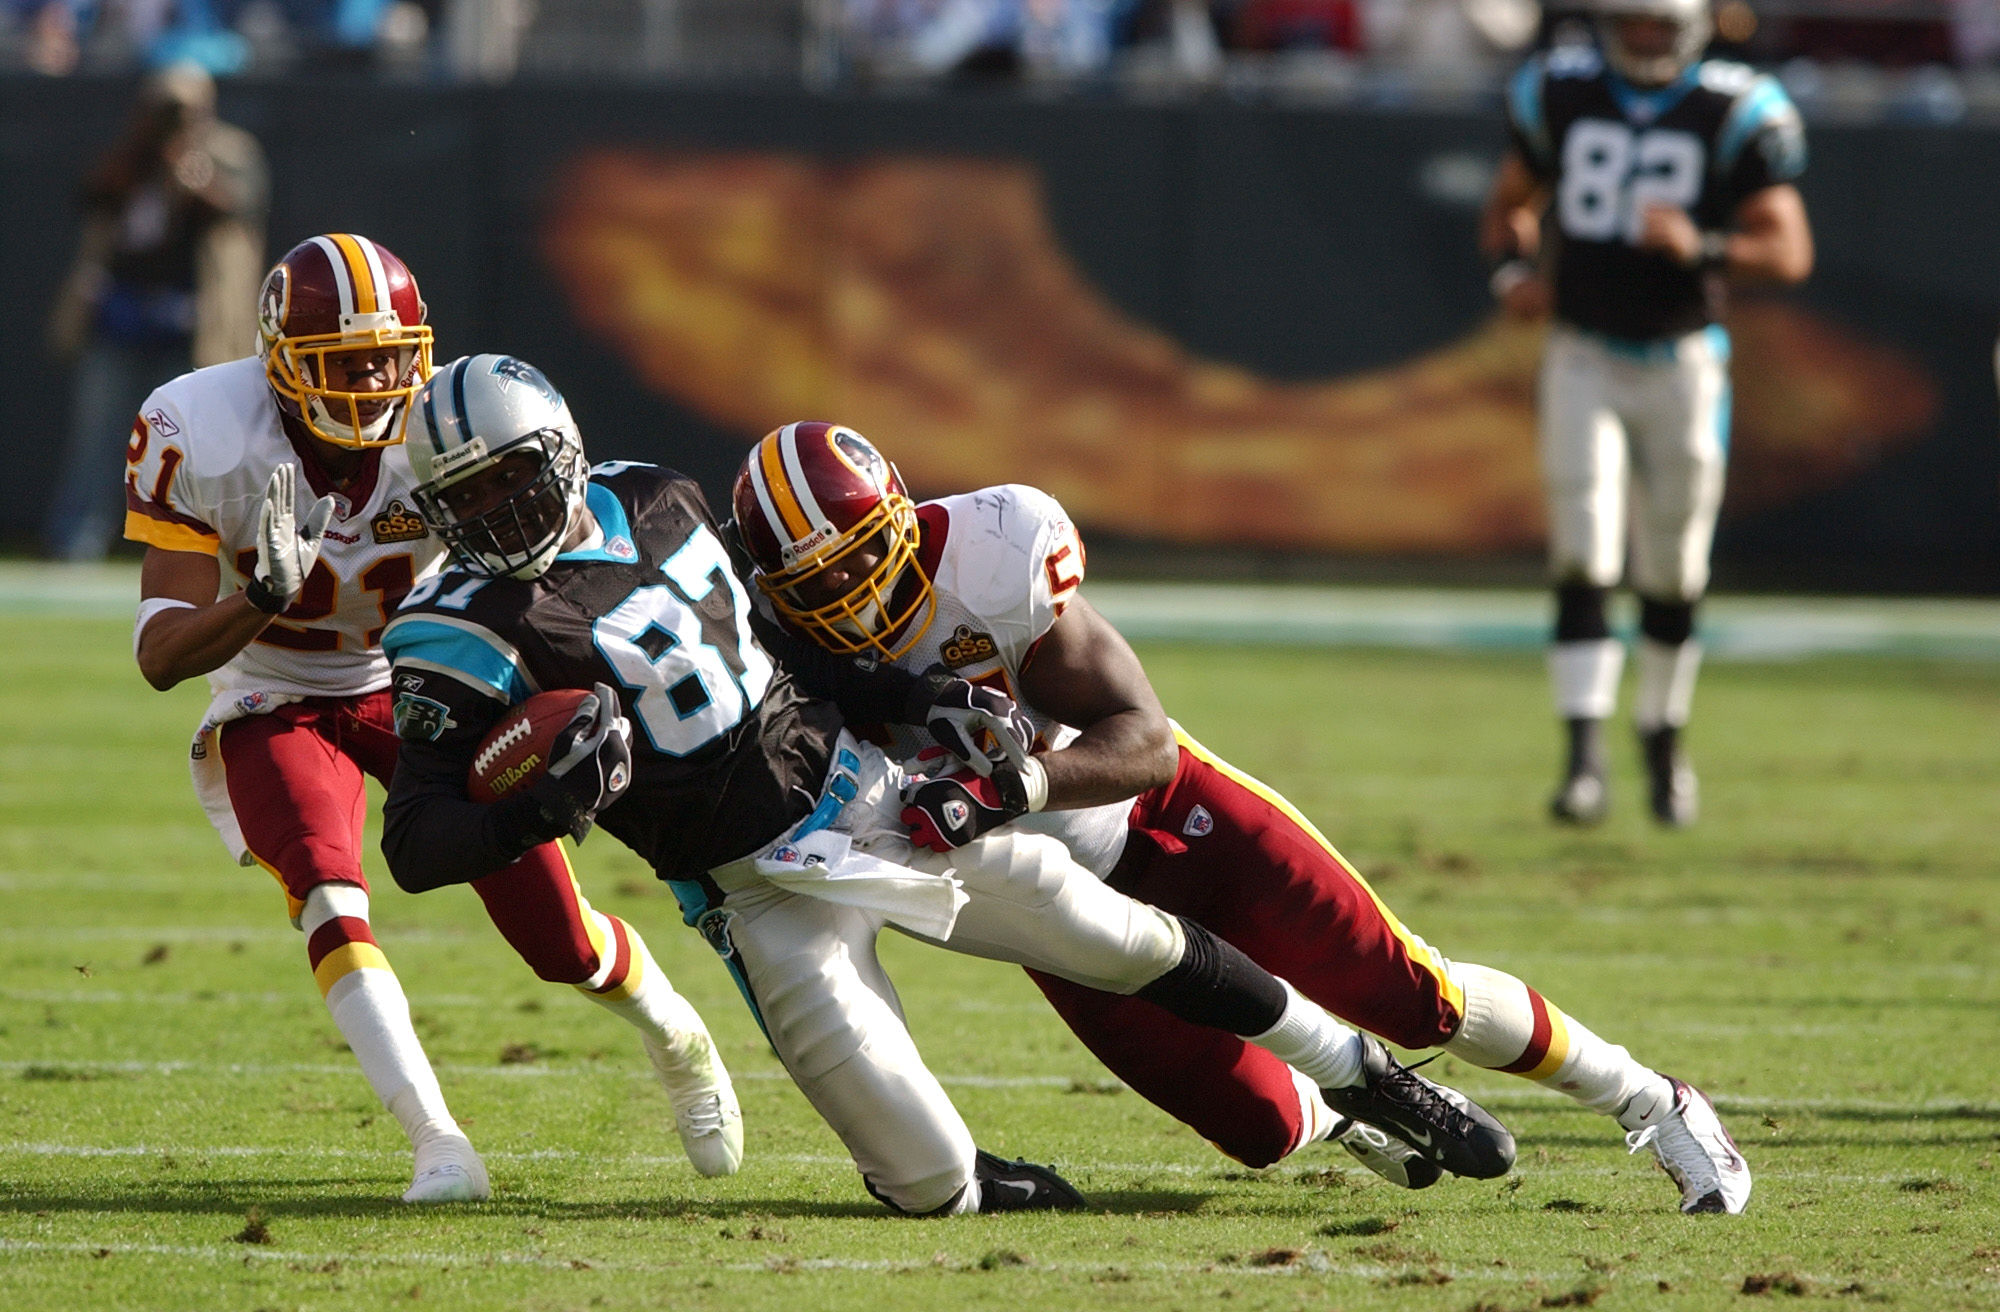 NFL: NOV 16 Redskins at Panthers